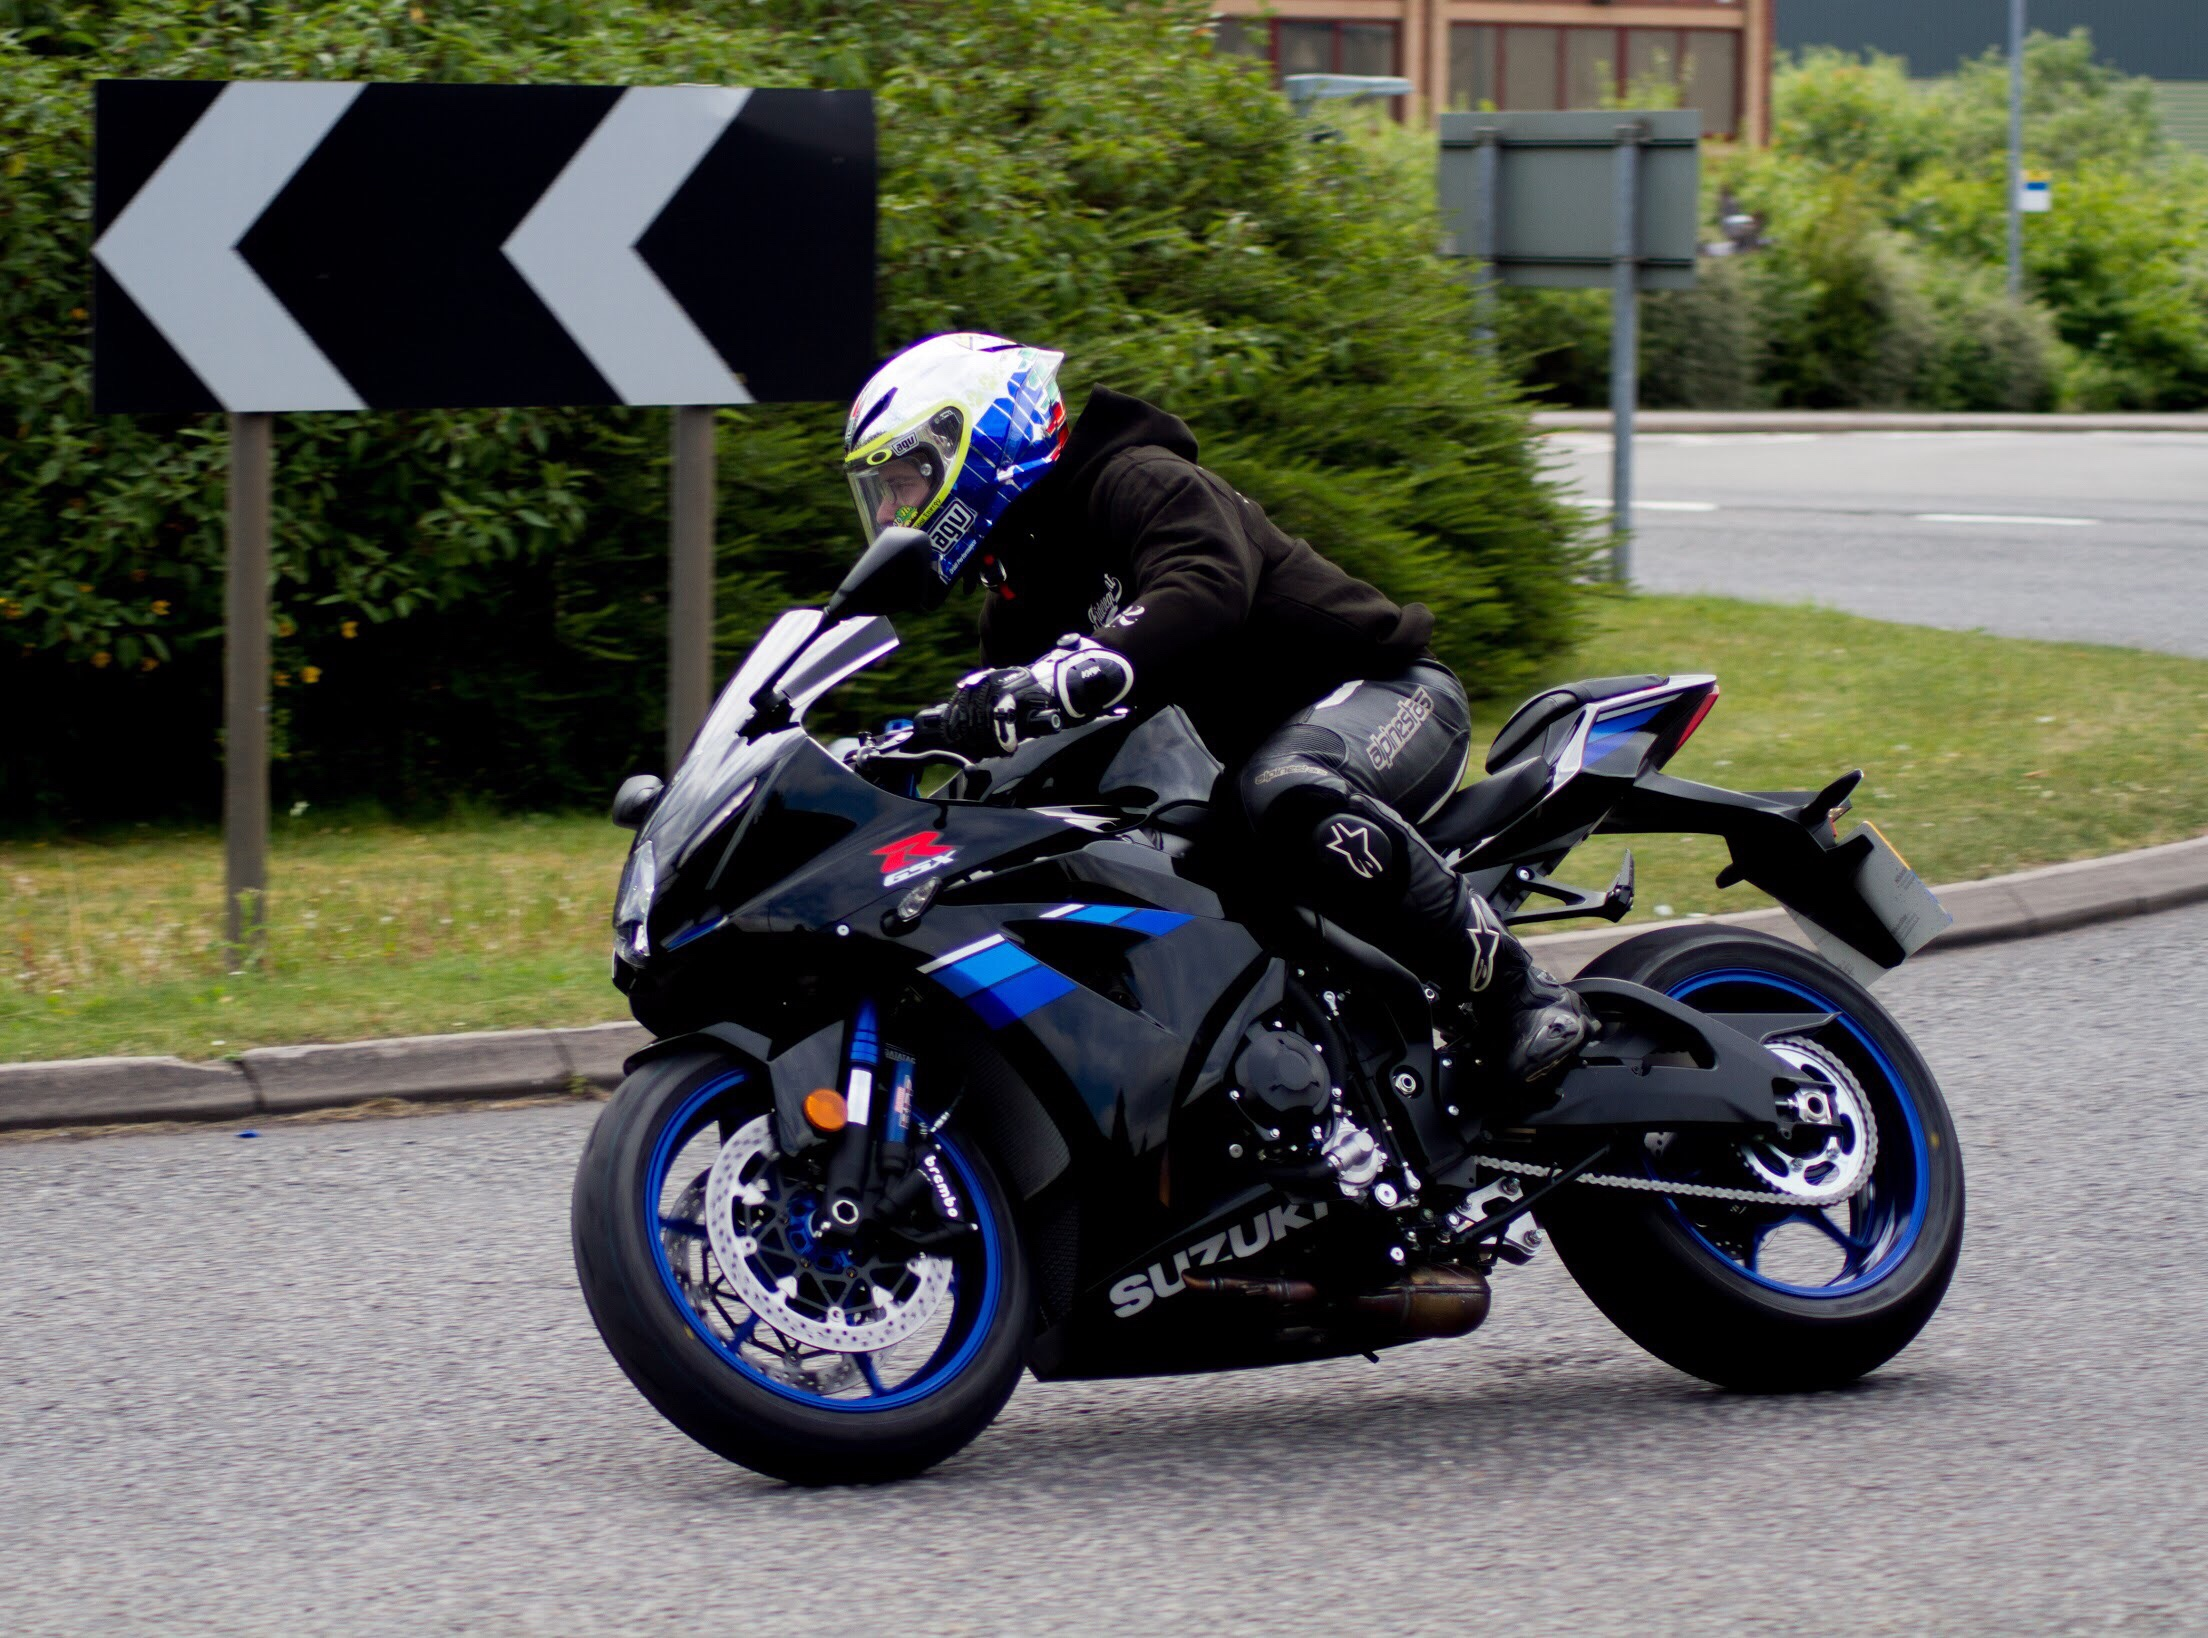 GSXR1000R review